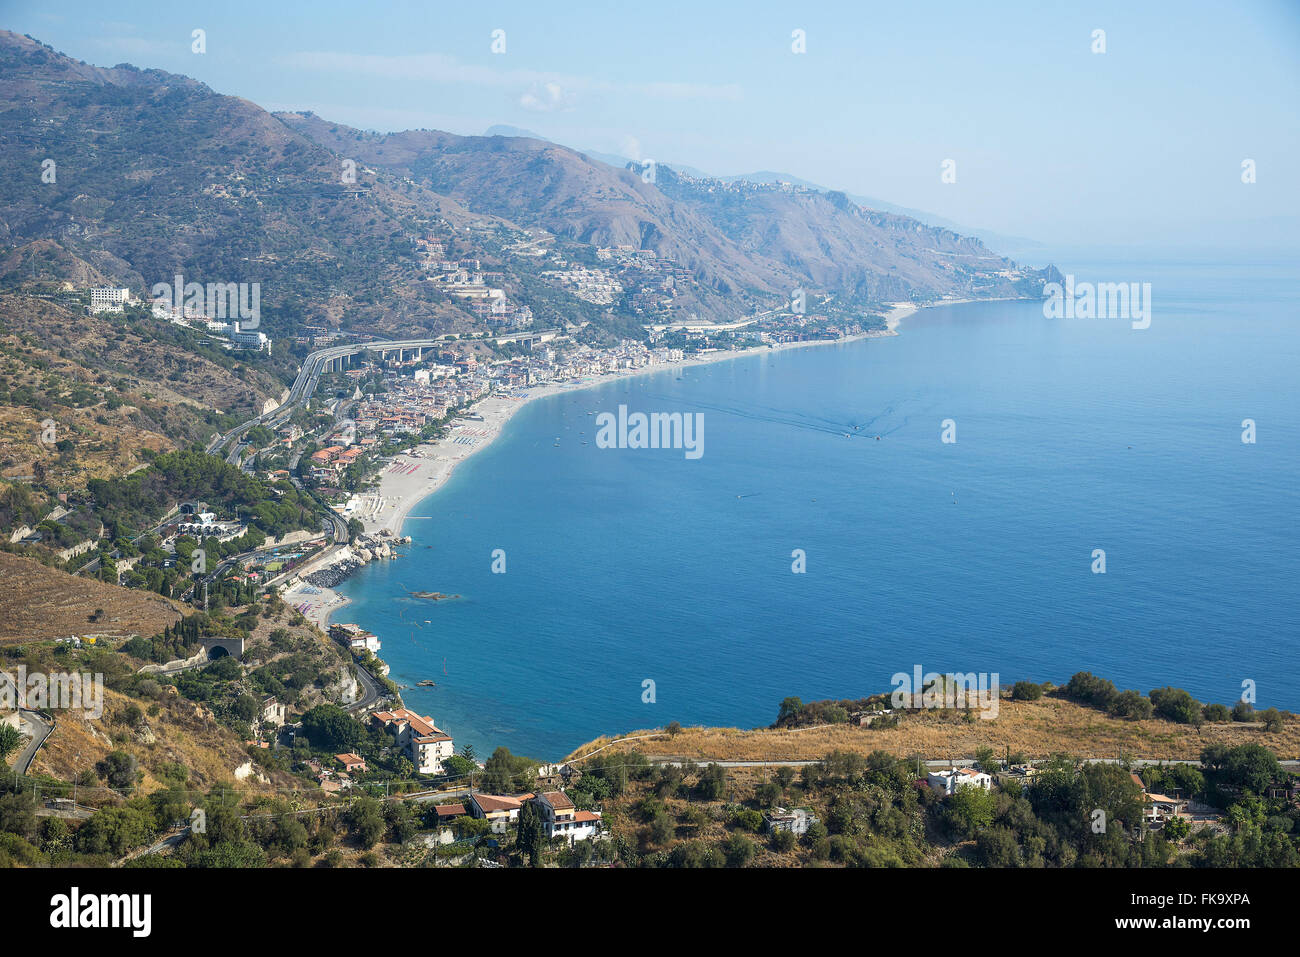 View of the coast of the city on the shores of the Ionian Sea - the Mediterranean Sea arm - Stock Image